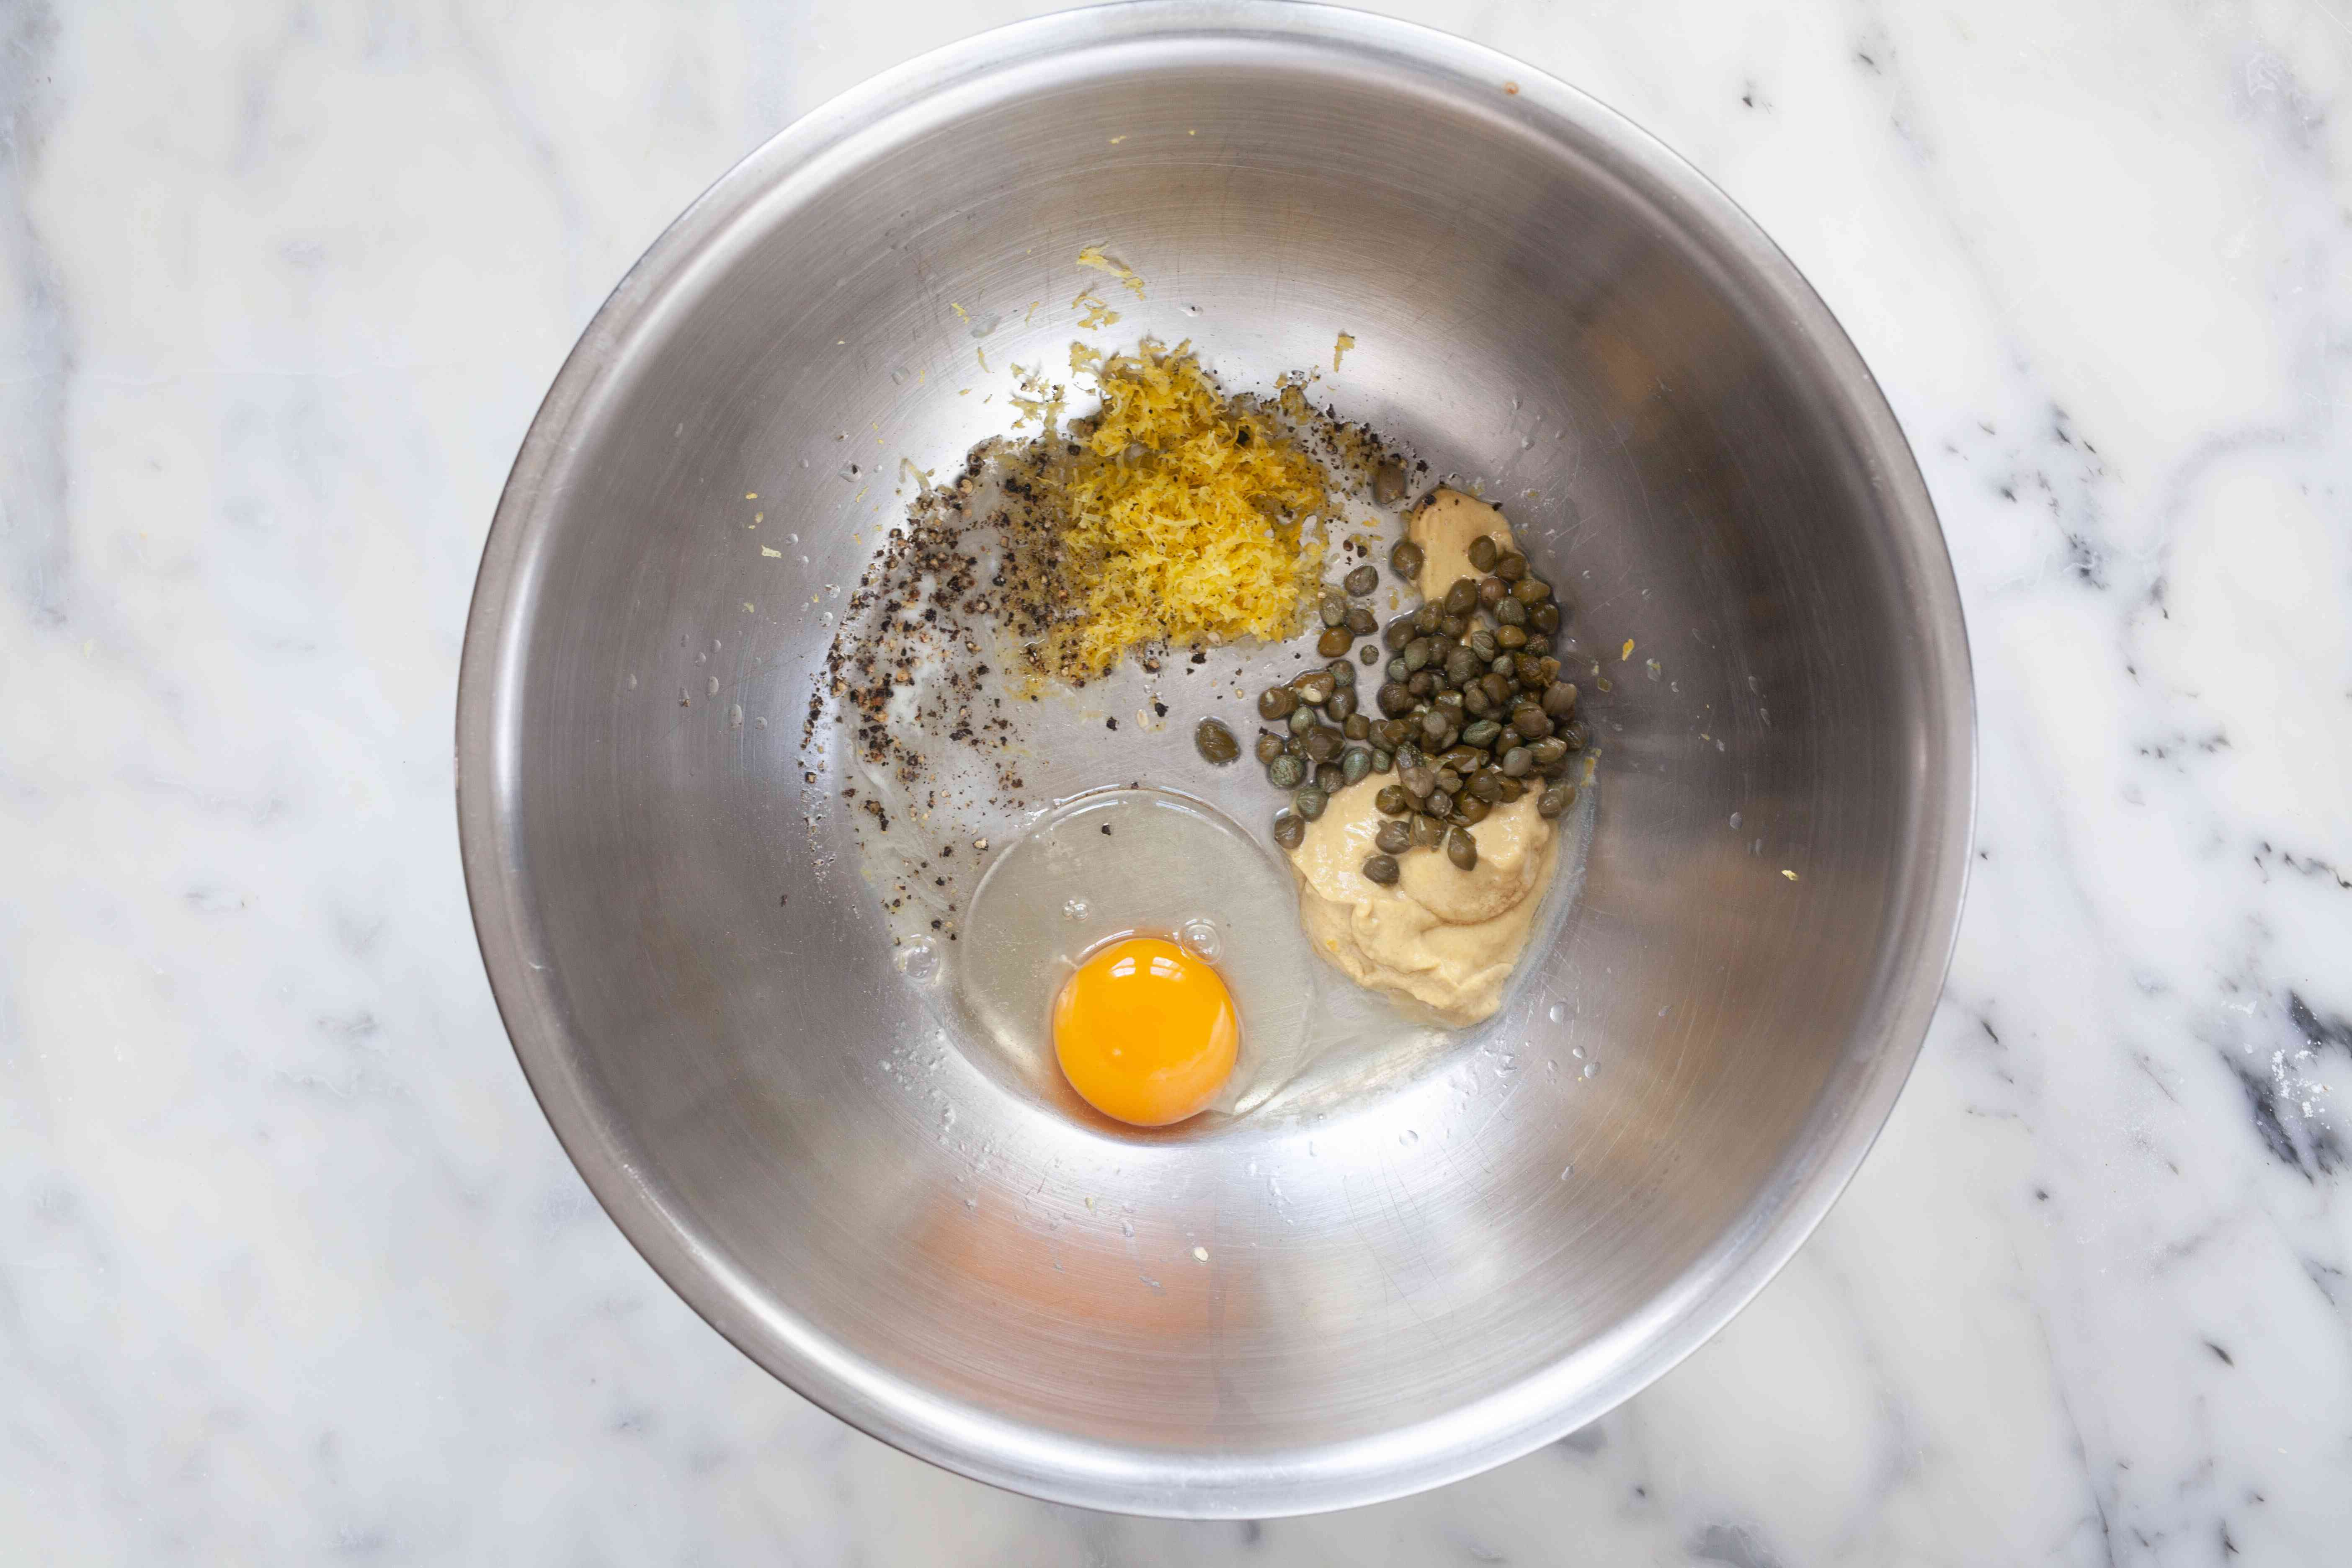 Egg and spices in a metal bowl to make a salmon burger recipe.